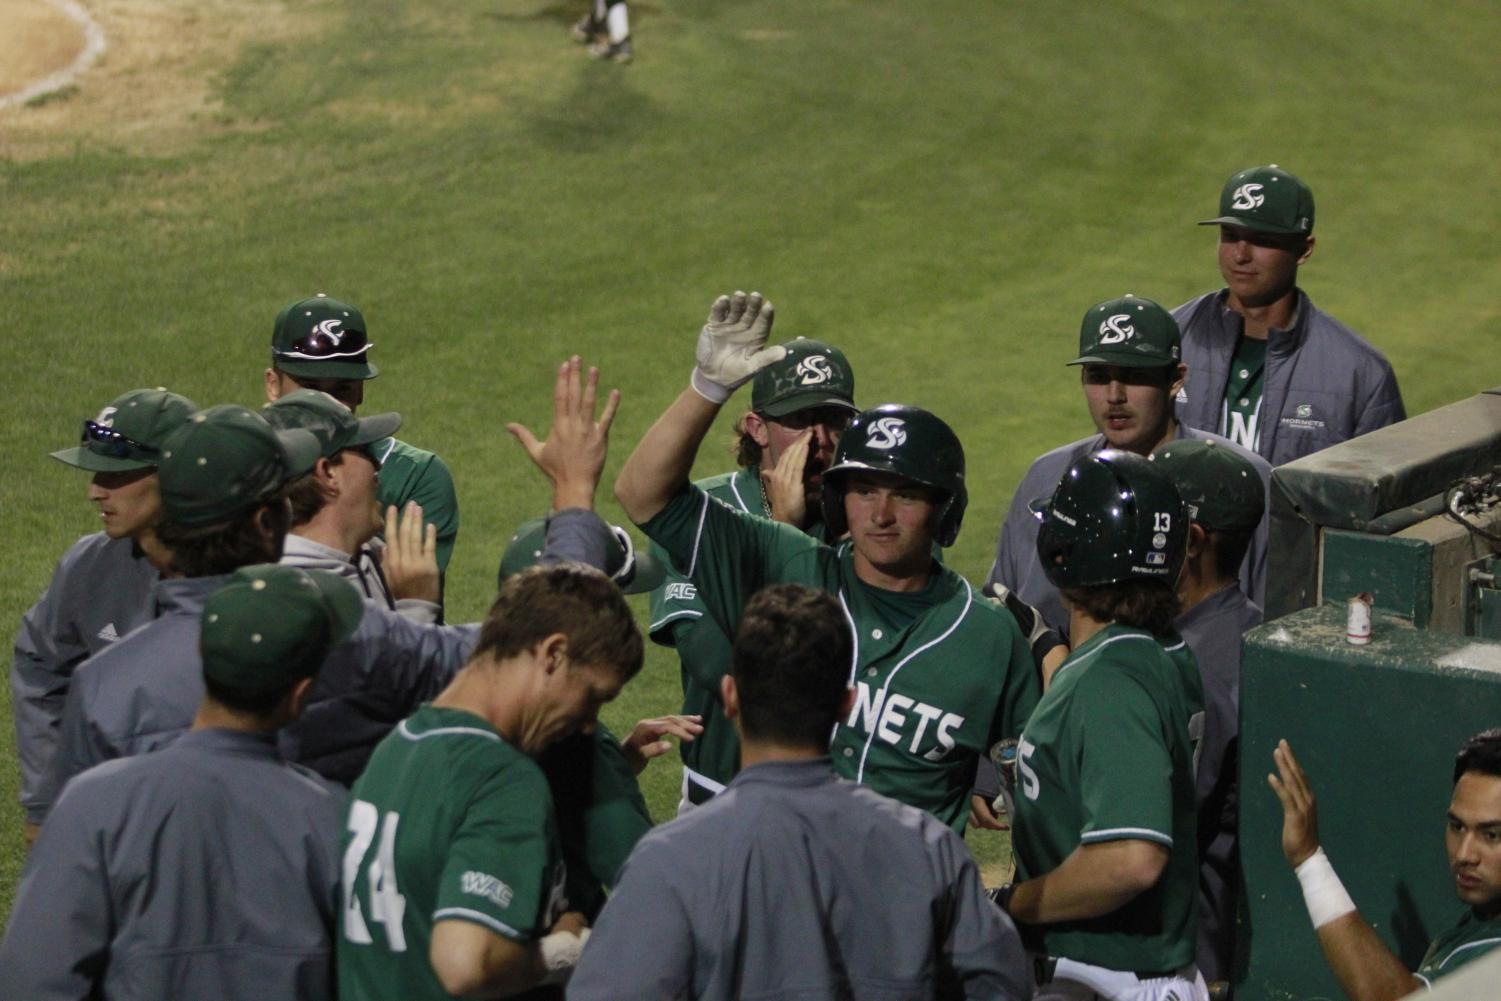 Sac State sophomore catcher Dawsen Bacho celebrates with his teammates upon returning to the dugout after scoring a run in a 4-3 win over Nevada Tuesday at John Smith Field. With the win, the Hornets now have won 30 plus games for the eighth straight season.